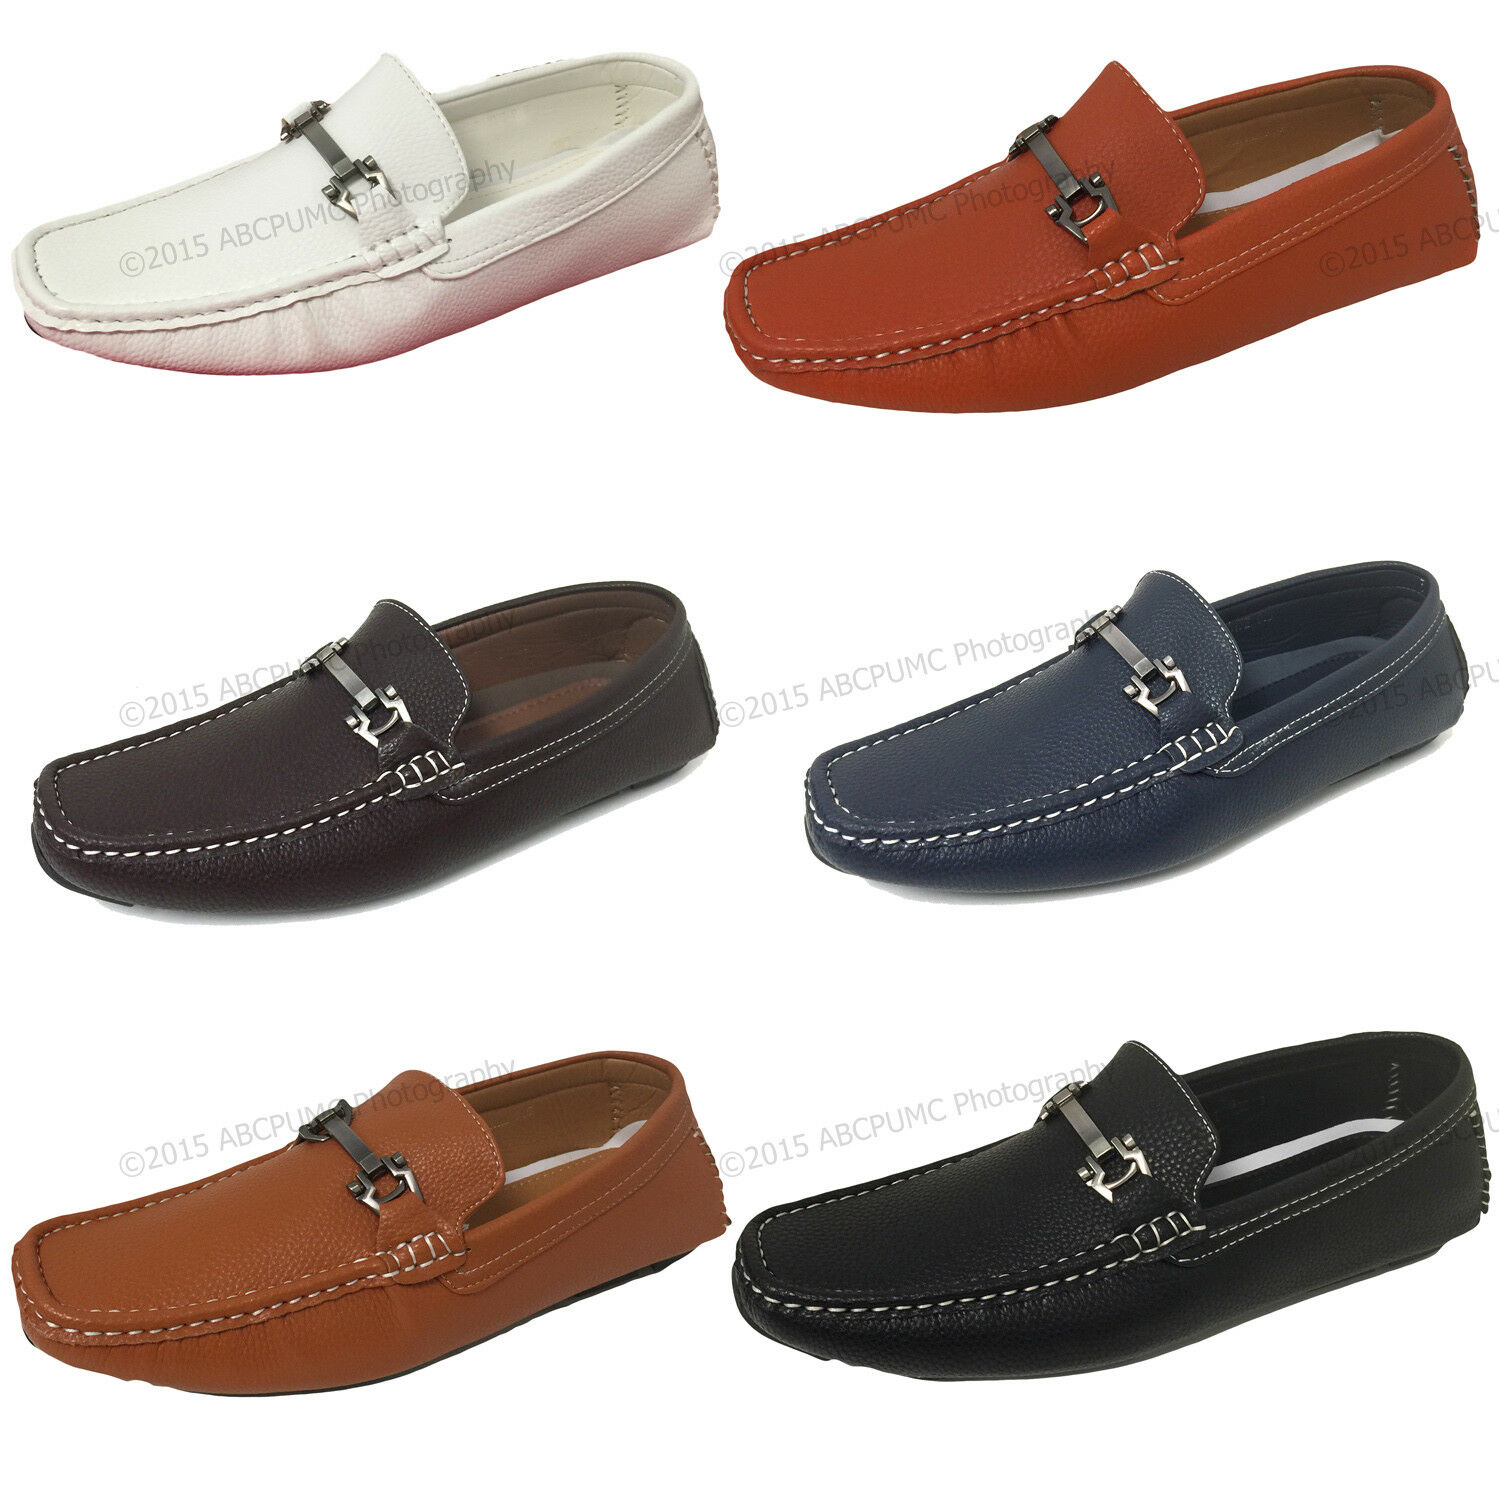 Mens Boat Driving Casual Moccasins Leather Loafers Slip On Boat Mens Deck Shoes Color Size f53e42